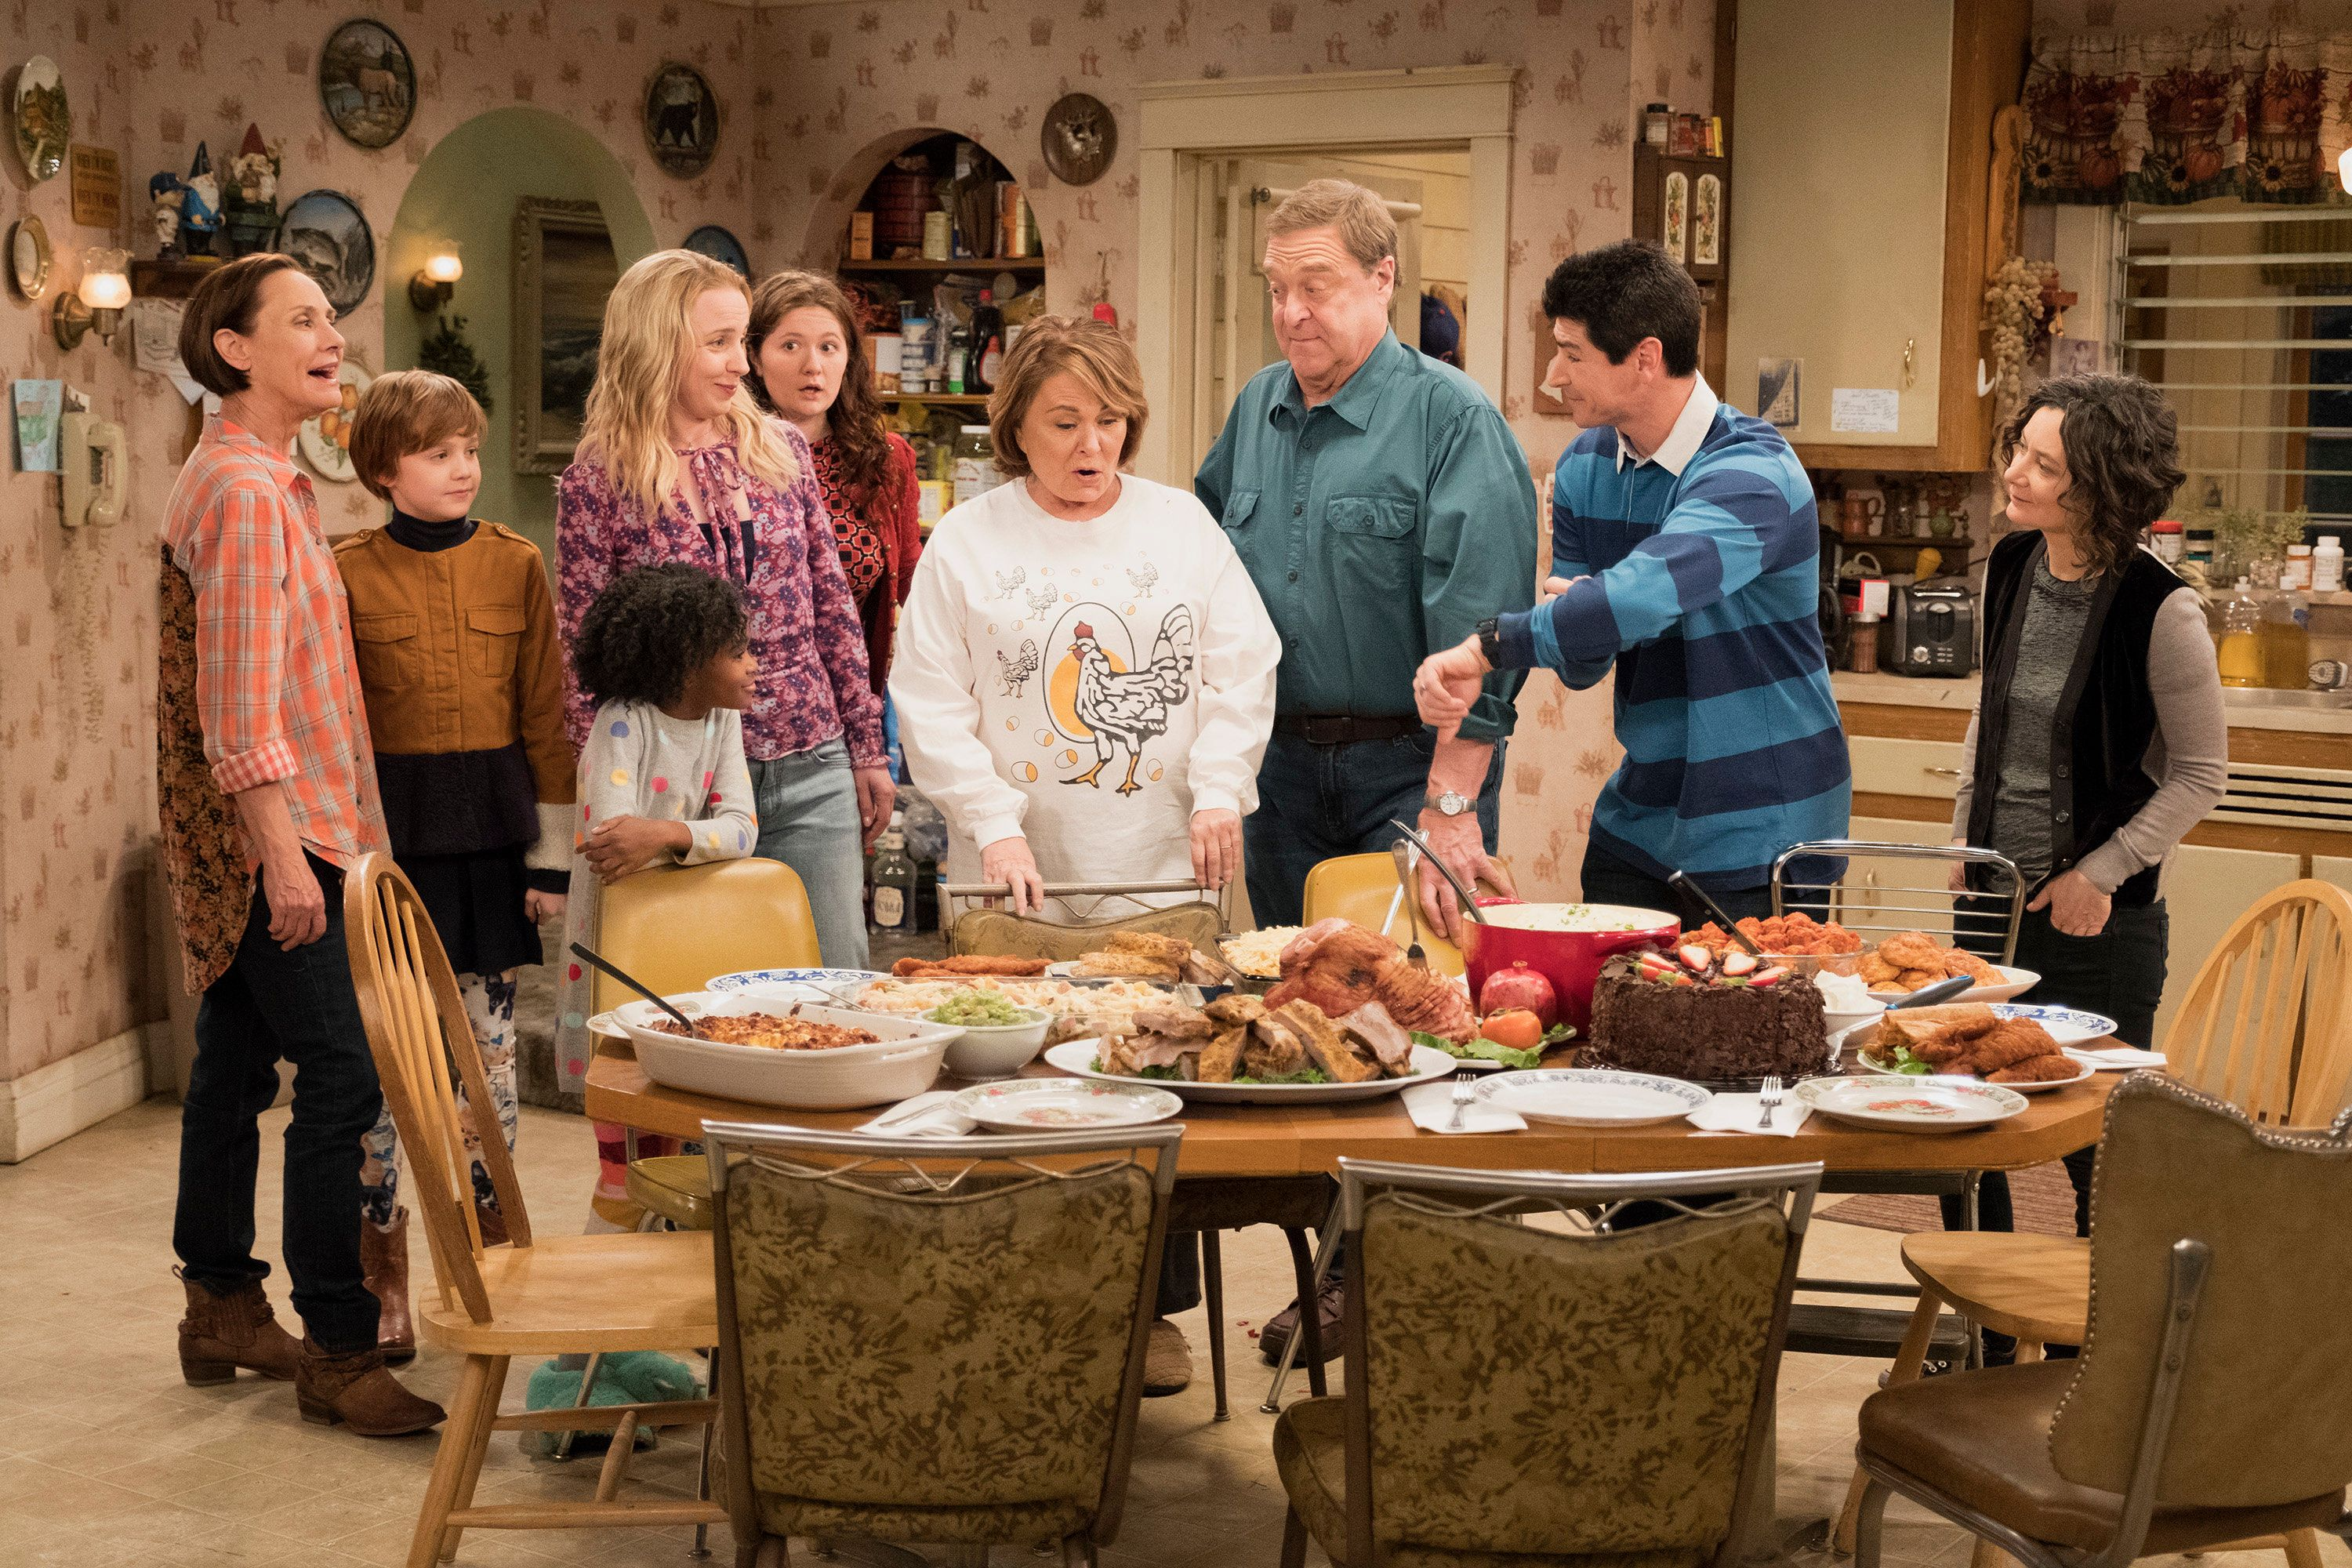 'Roseanne' Spin-Off Will Air Without Sitcom's Lead Star, ABC